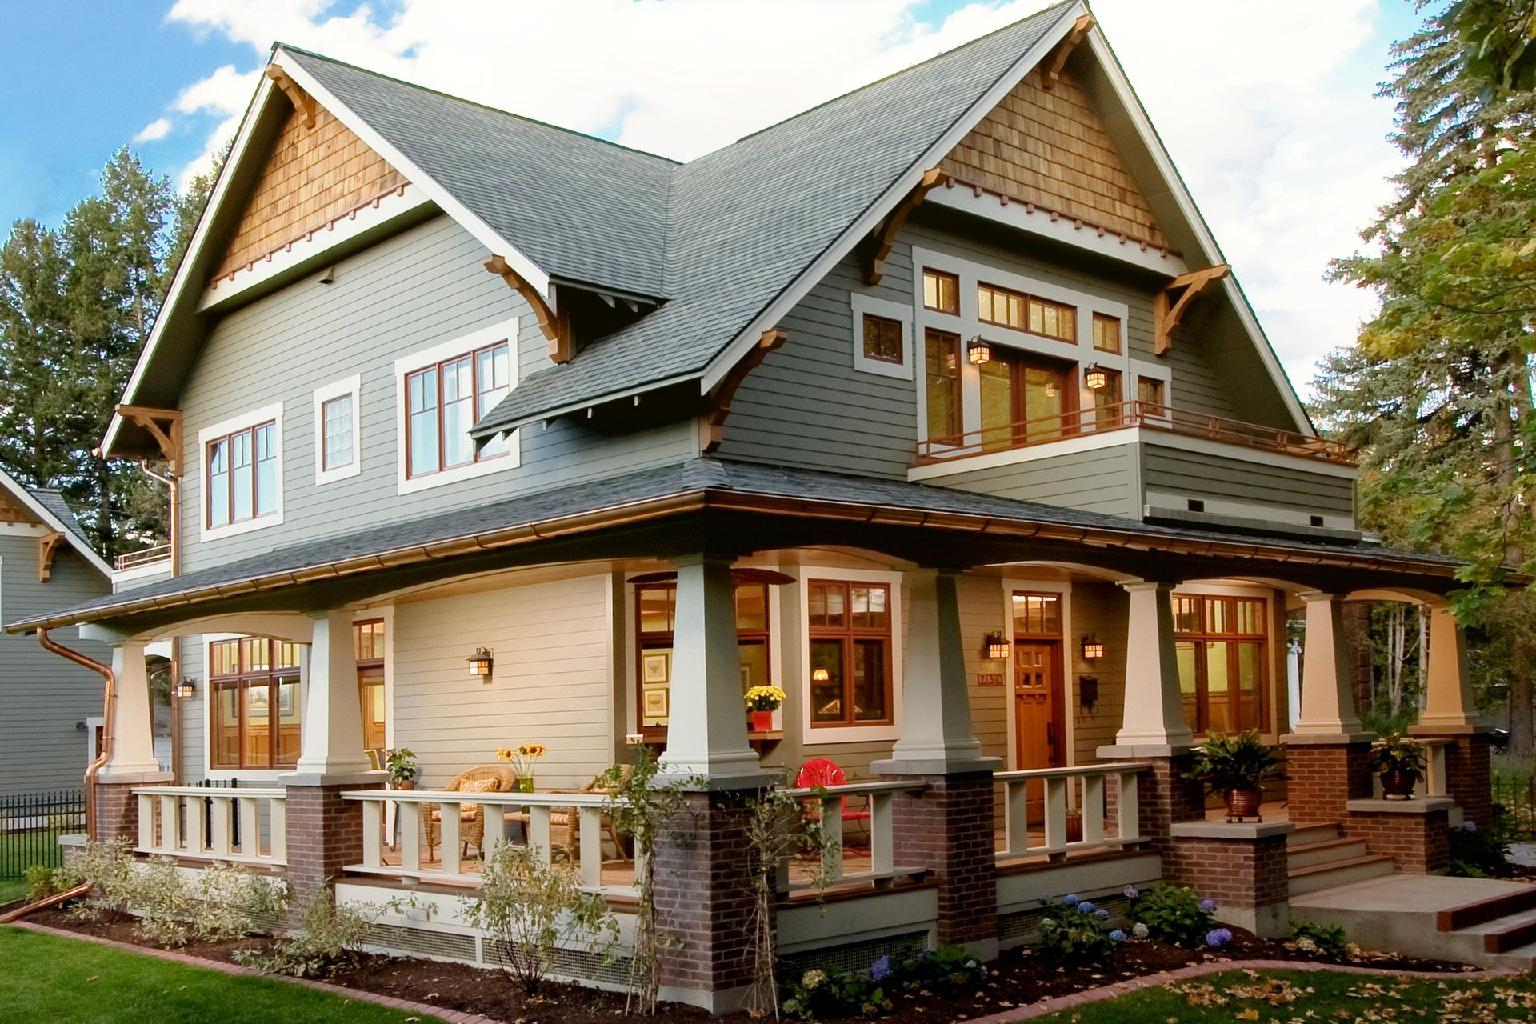 21 craftsman style house ideas with bedroom and kitchen for Classical style house